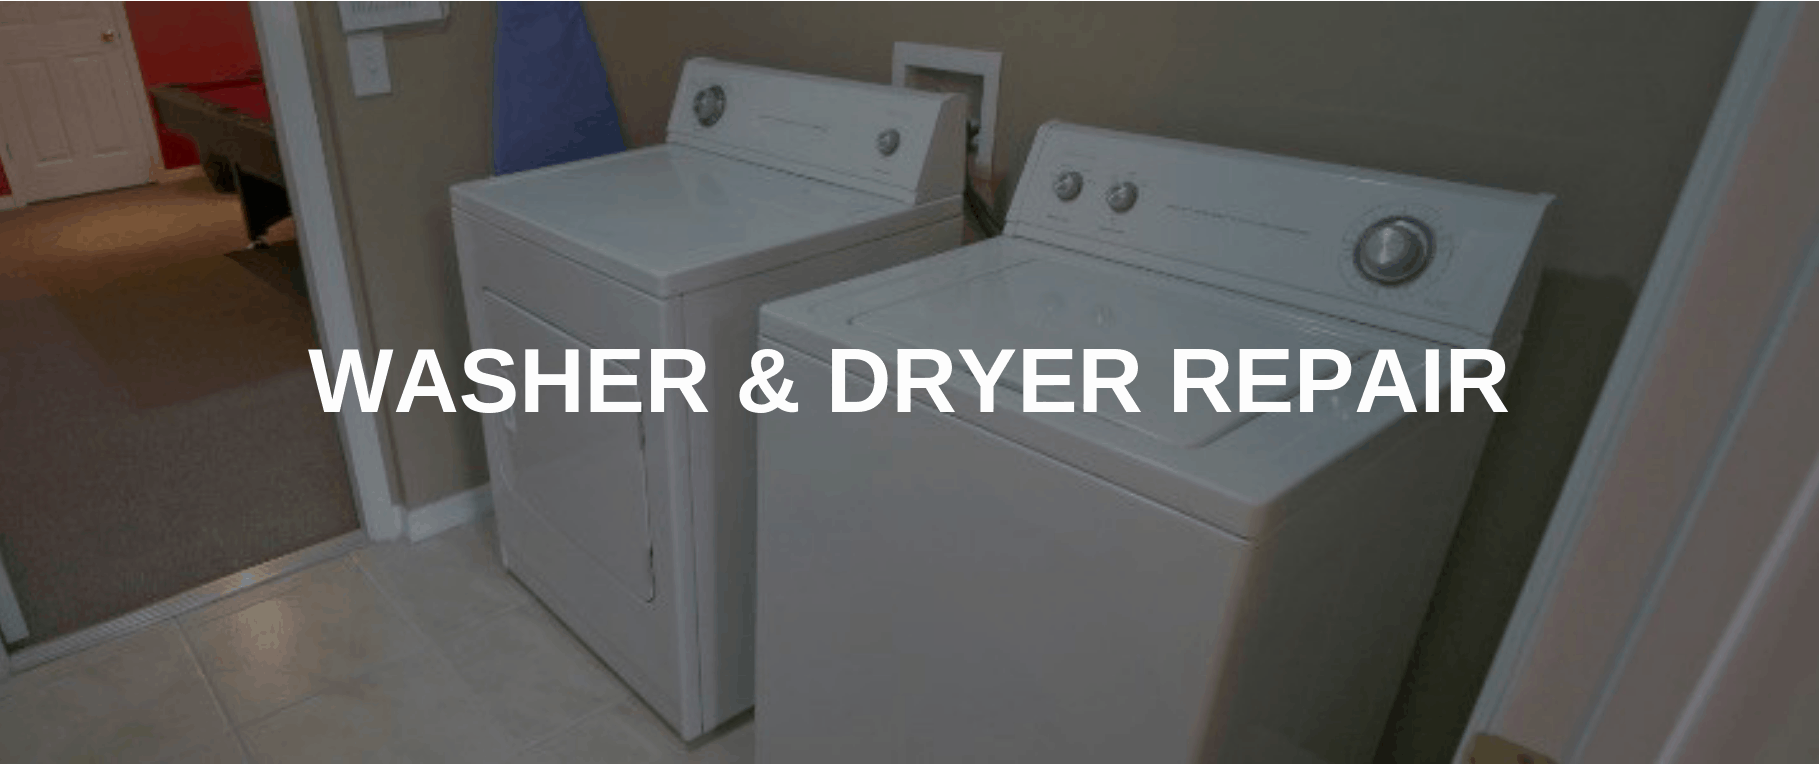 washing machine repair new rochelle